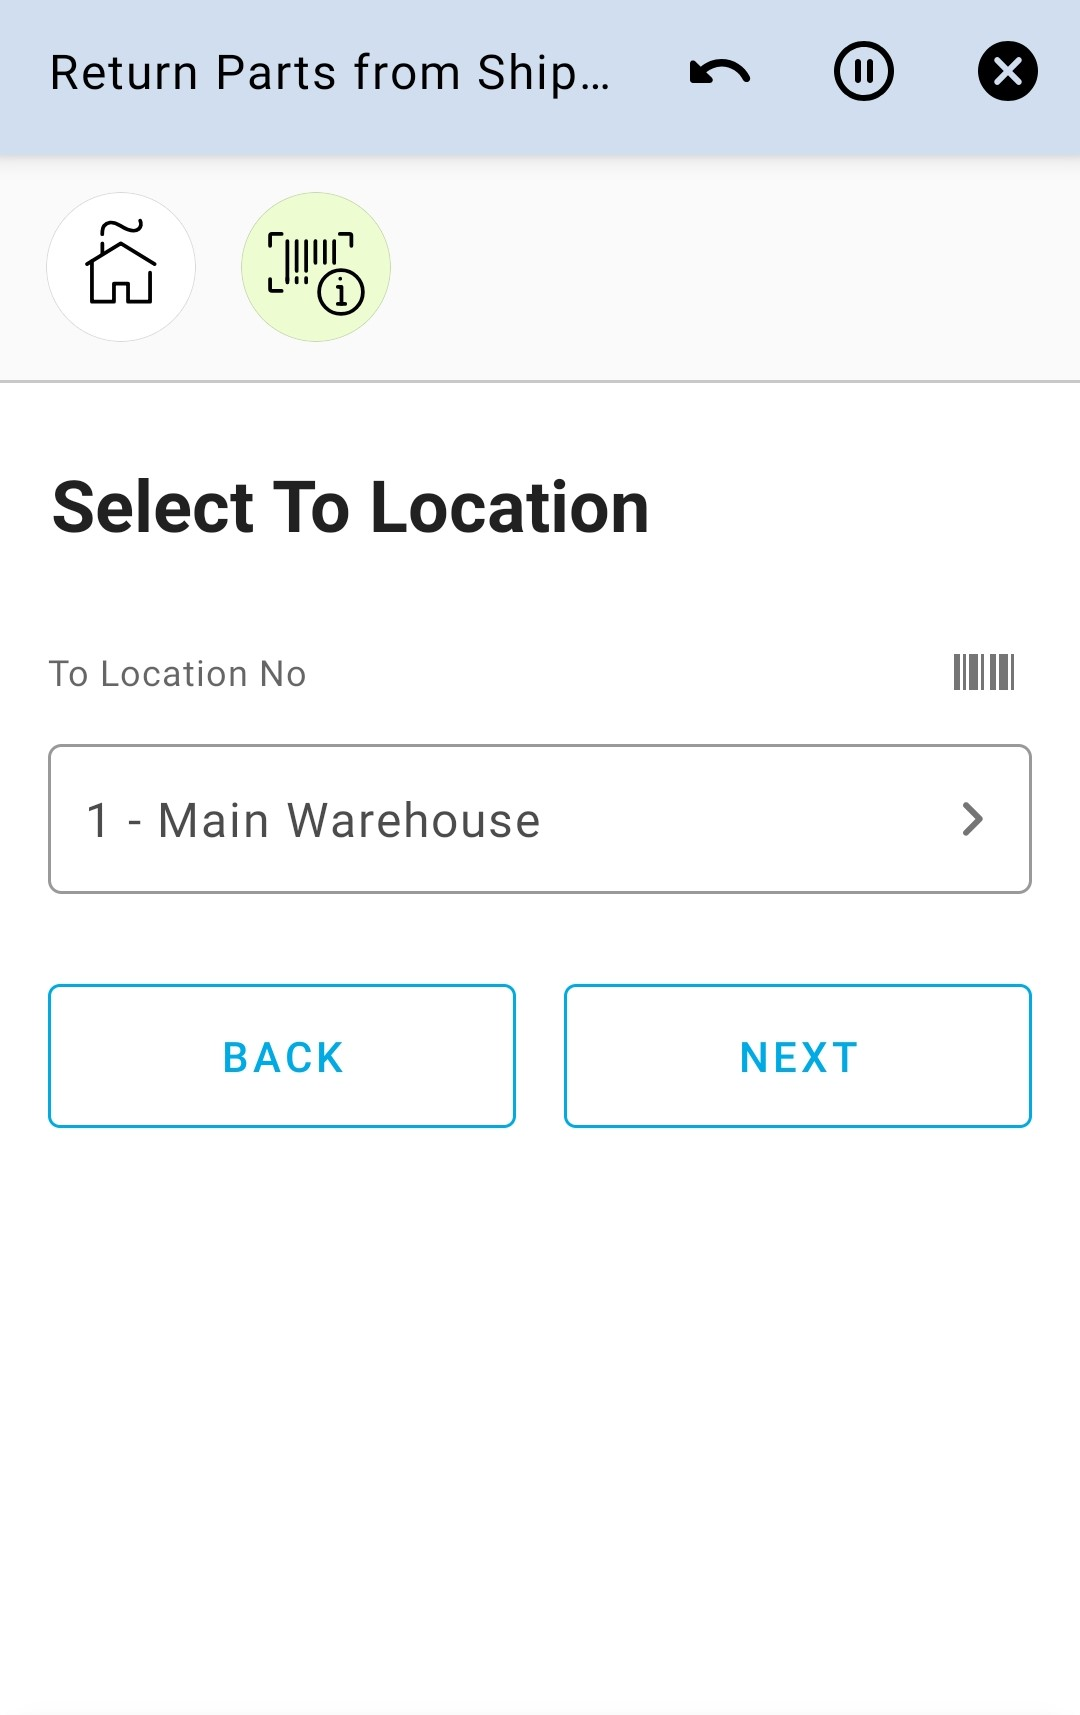 Select To Location